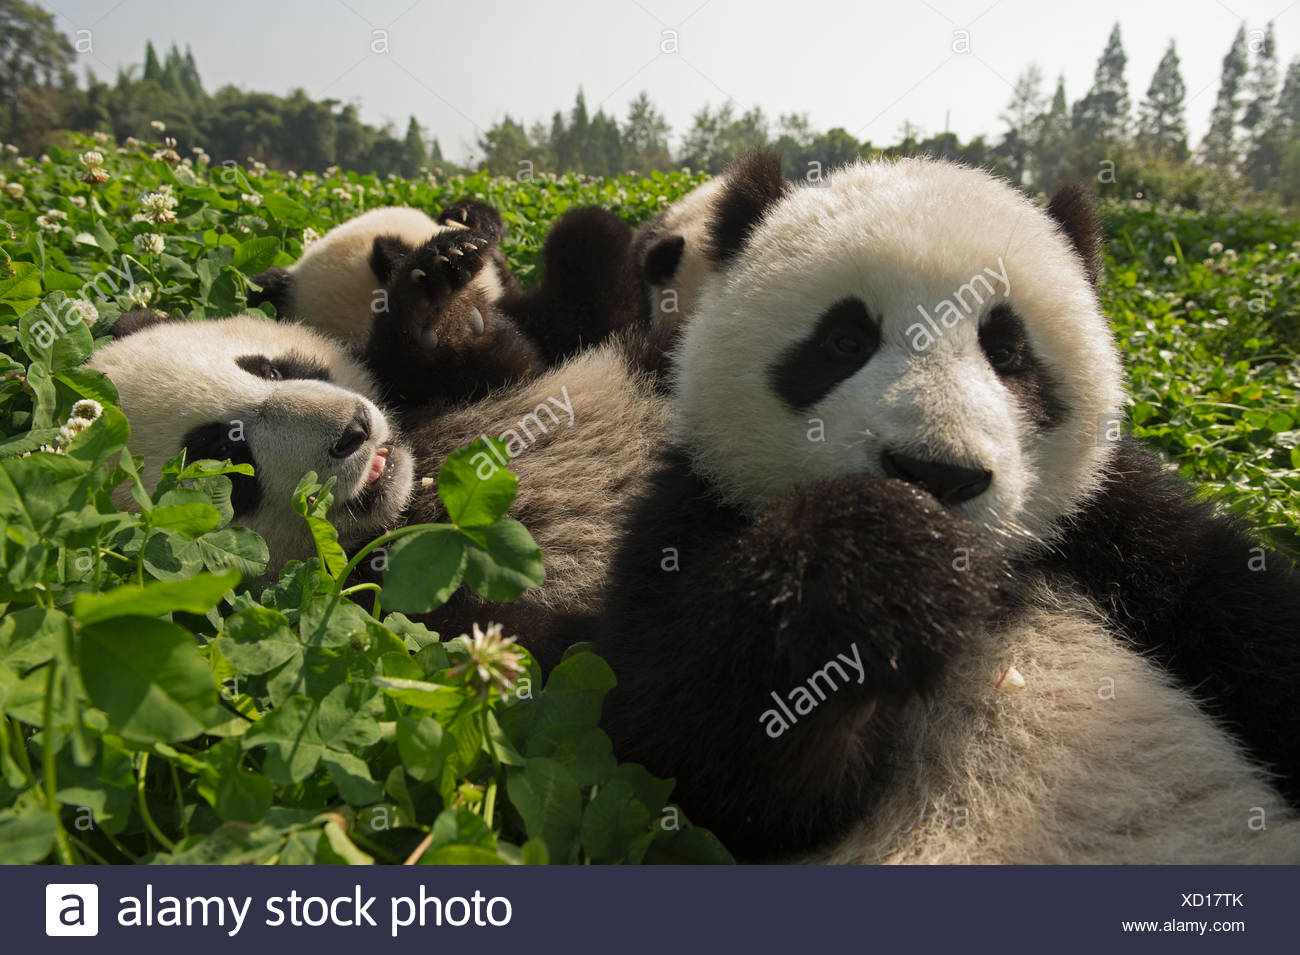 Six-month old giant pandas play at the Djianyan Panda Base. - Stock Image